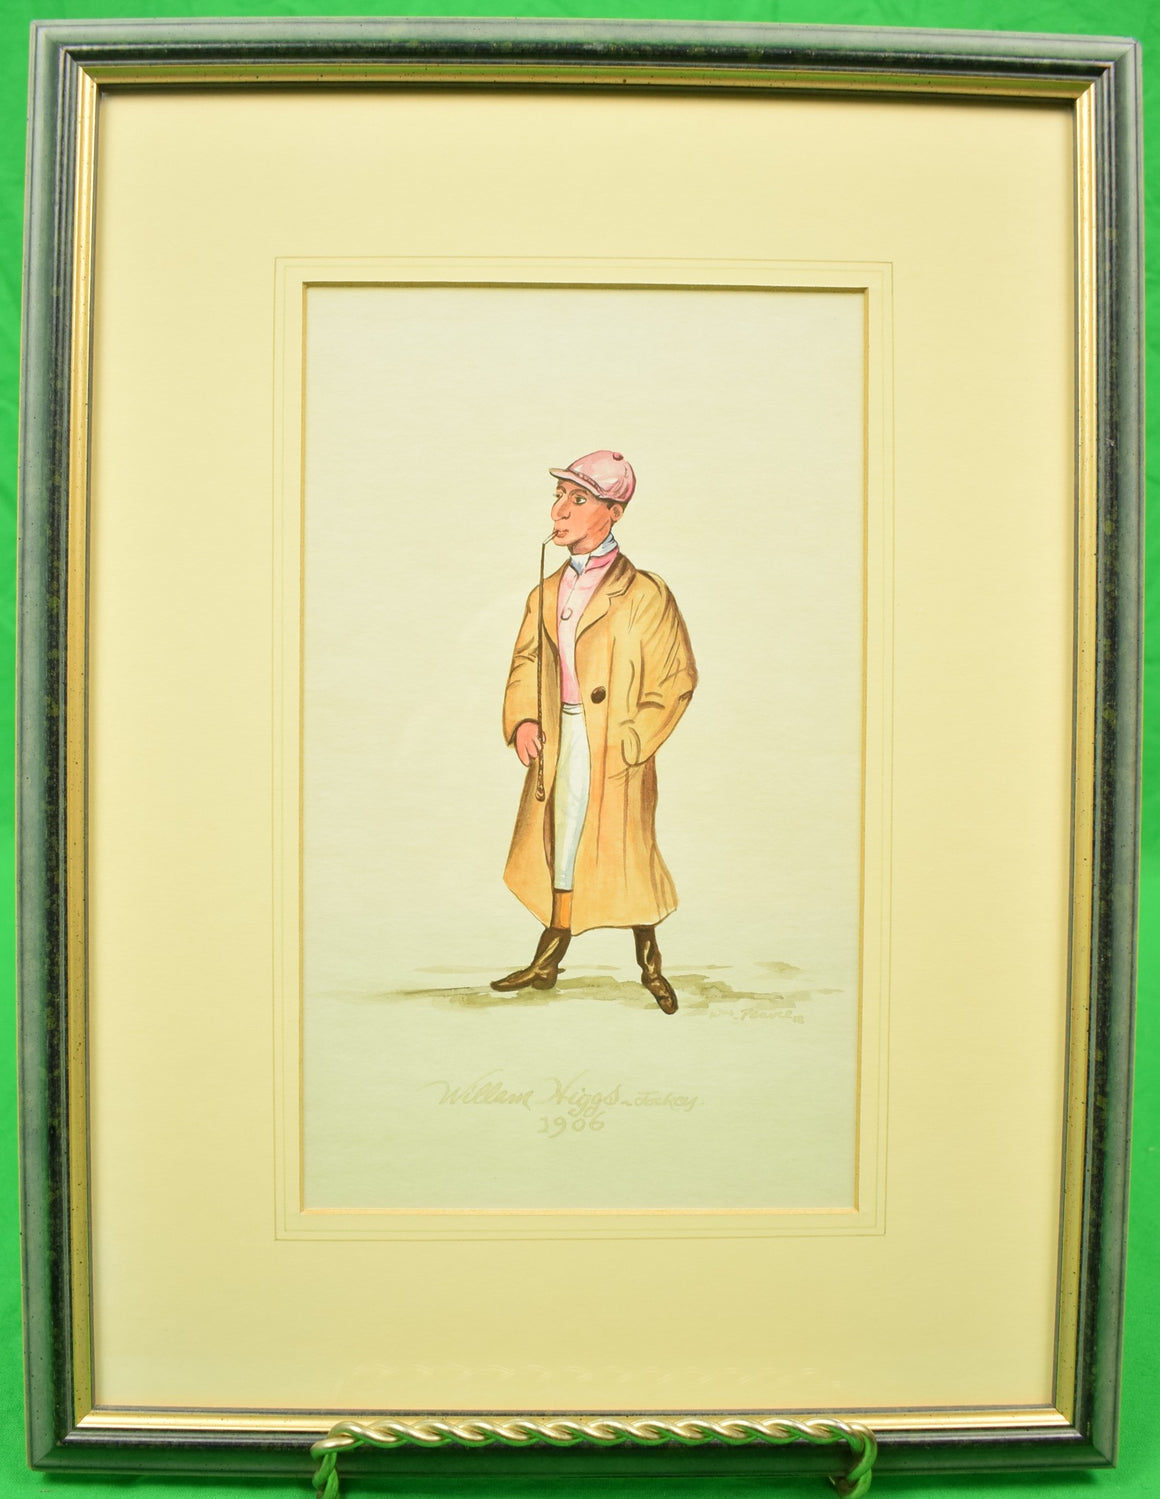 William Higgs, Jockey 1906 Watercolour by Wm. Pearce 08